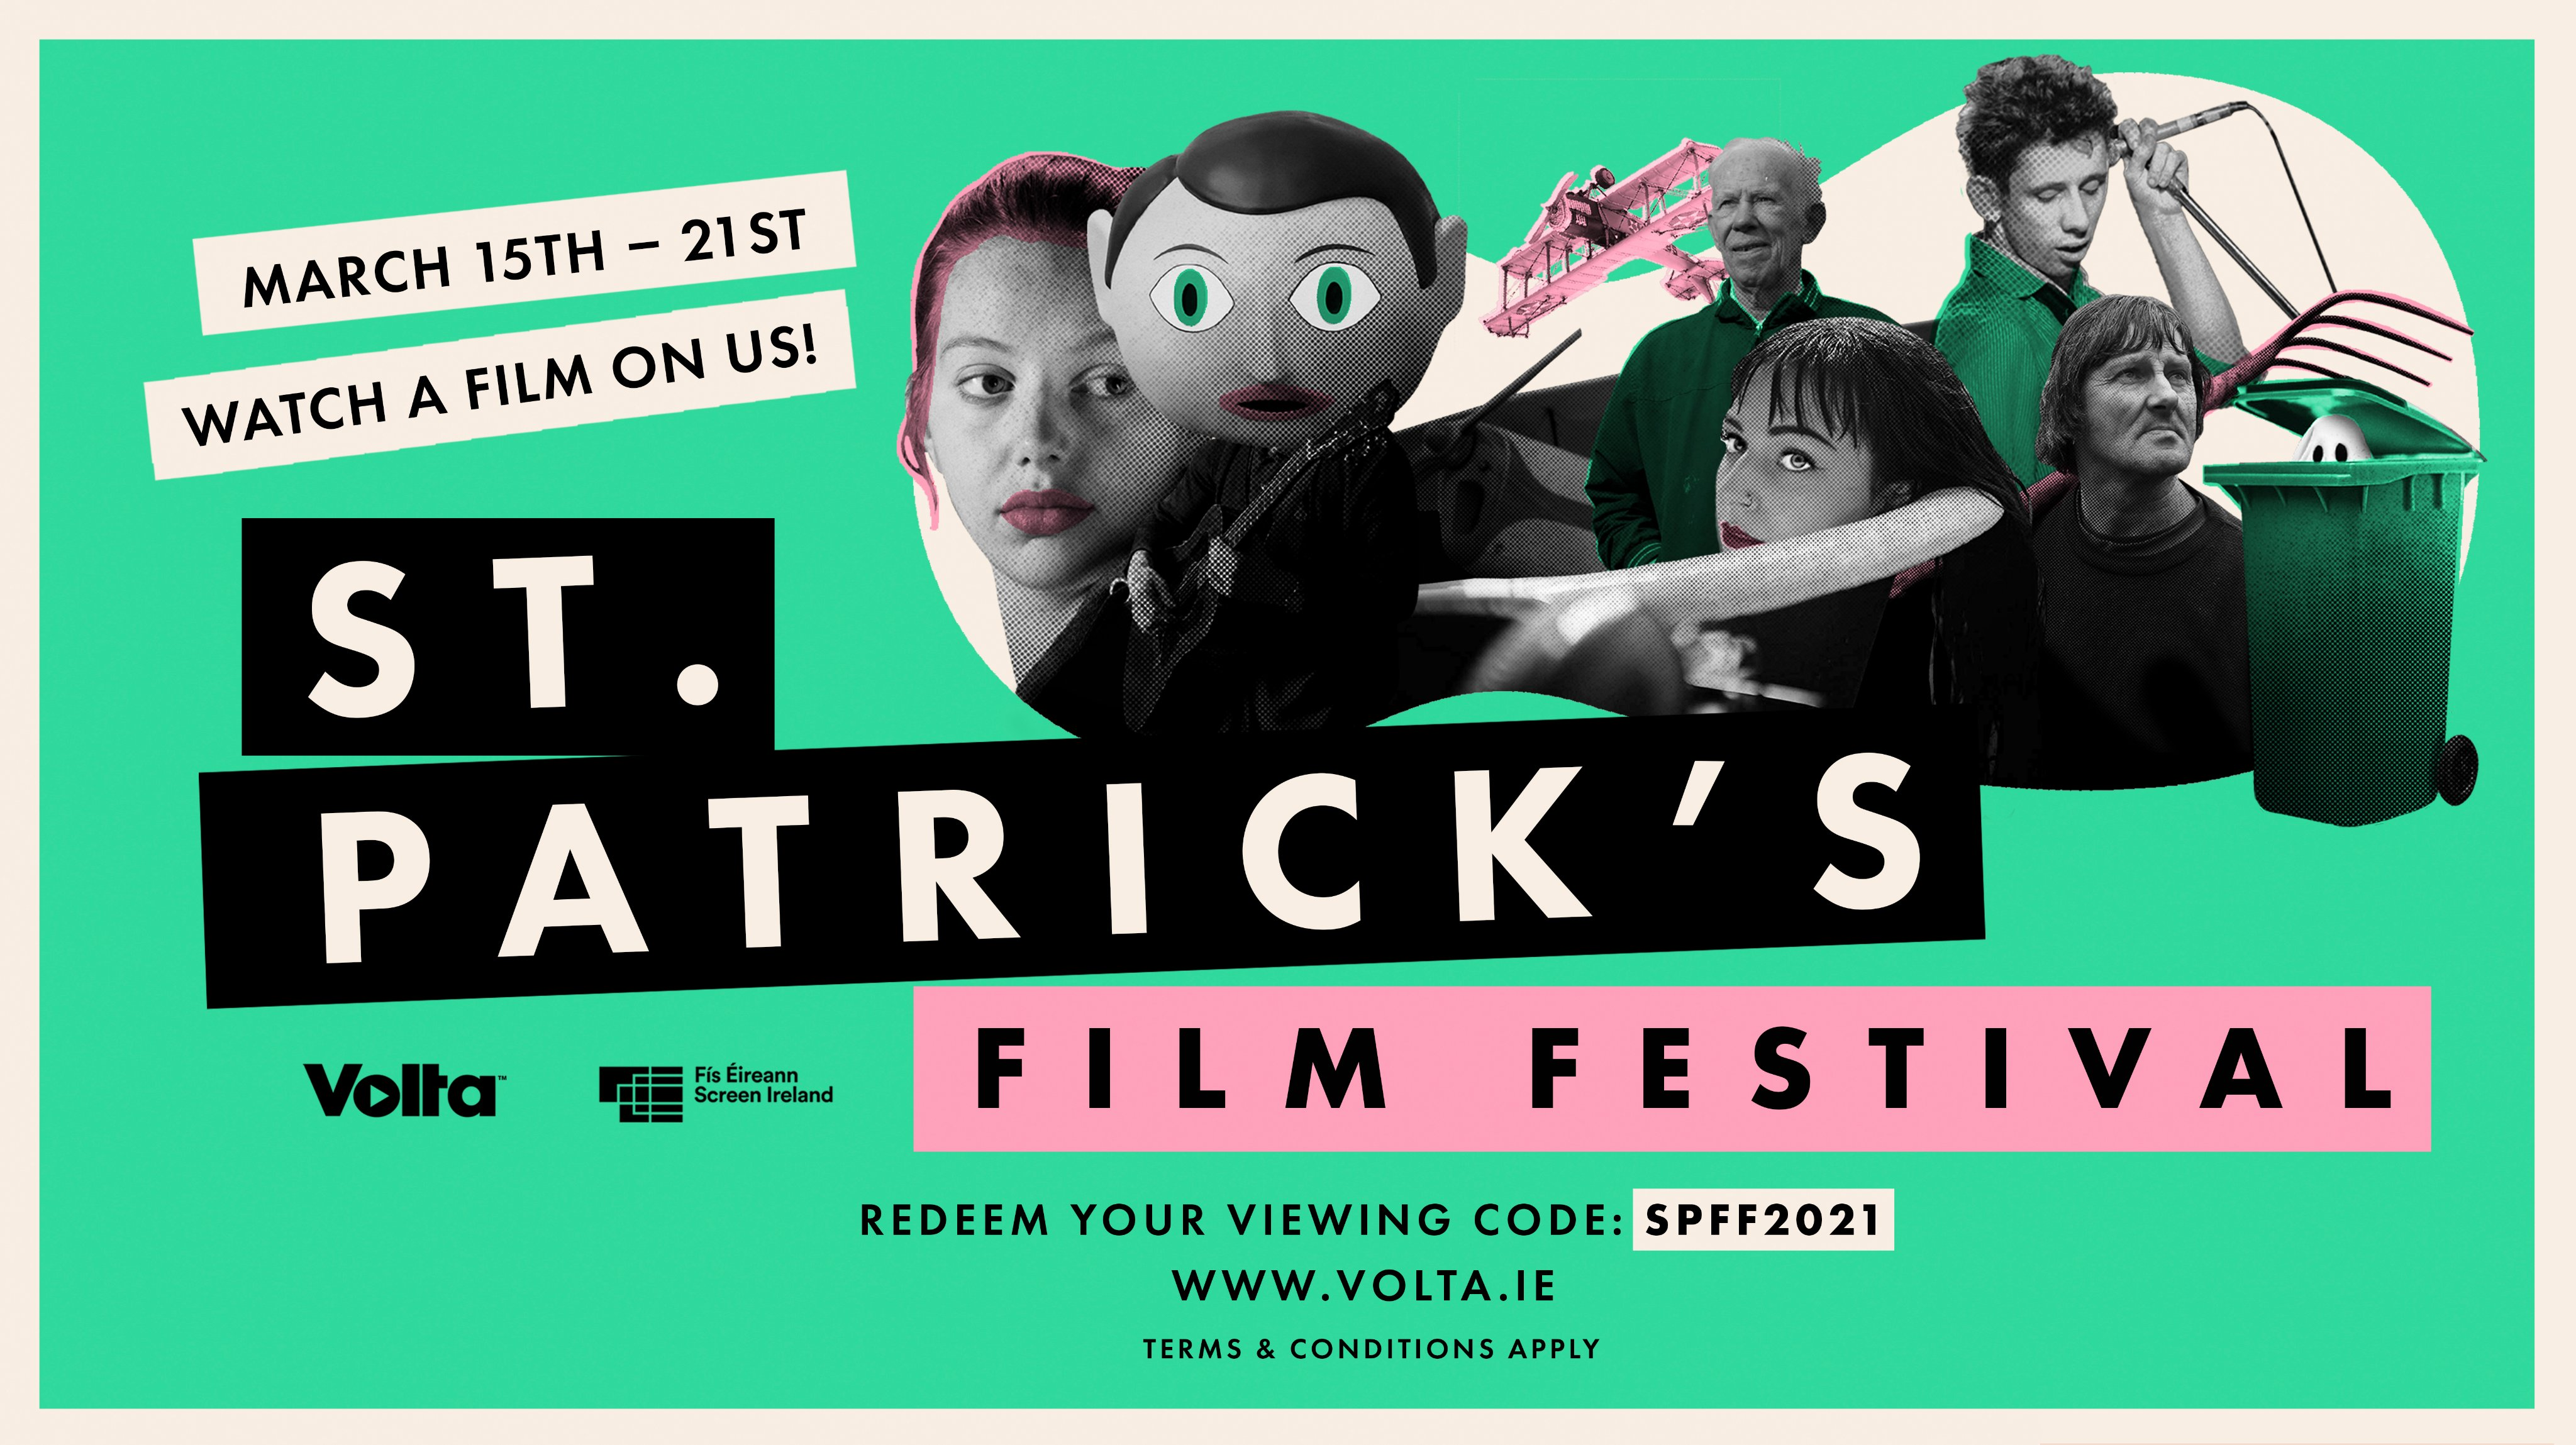 Some of the best of Irish film at the St. Patrick's Film Festival with Volta